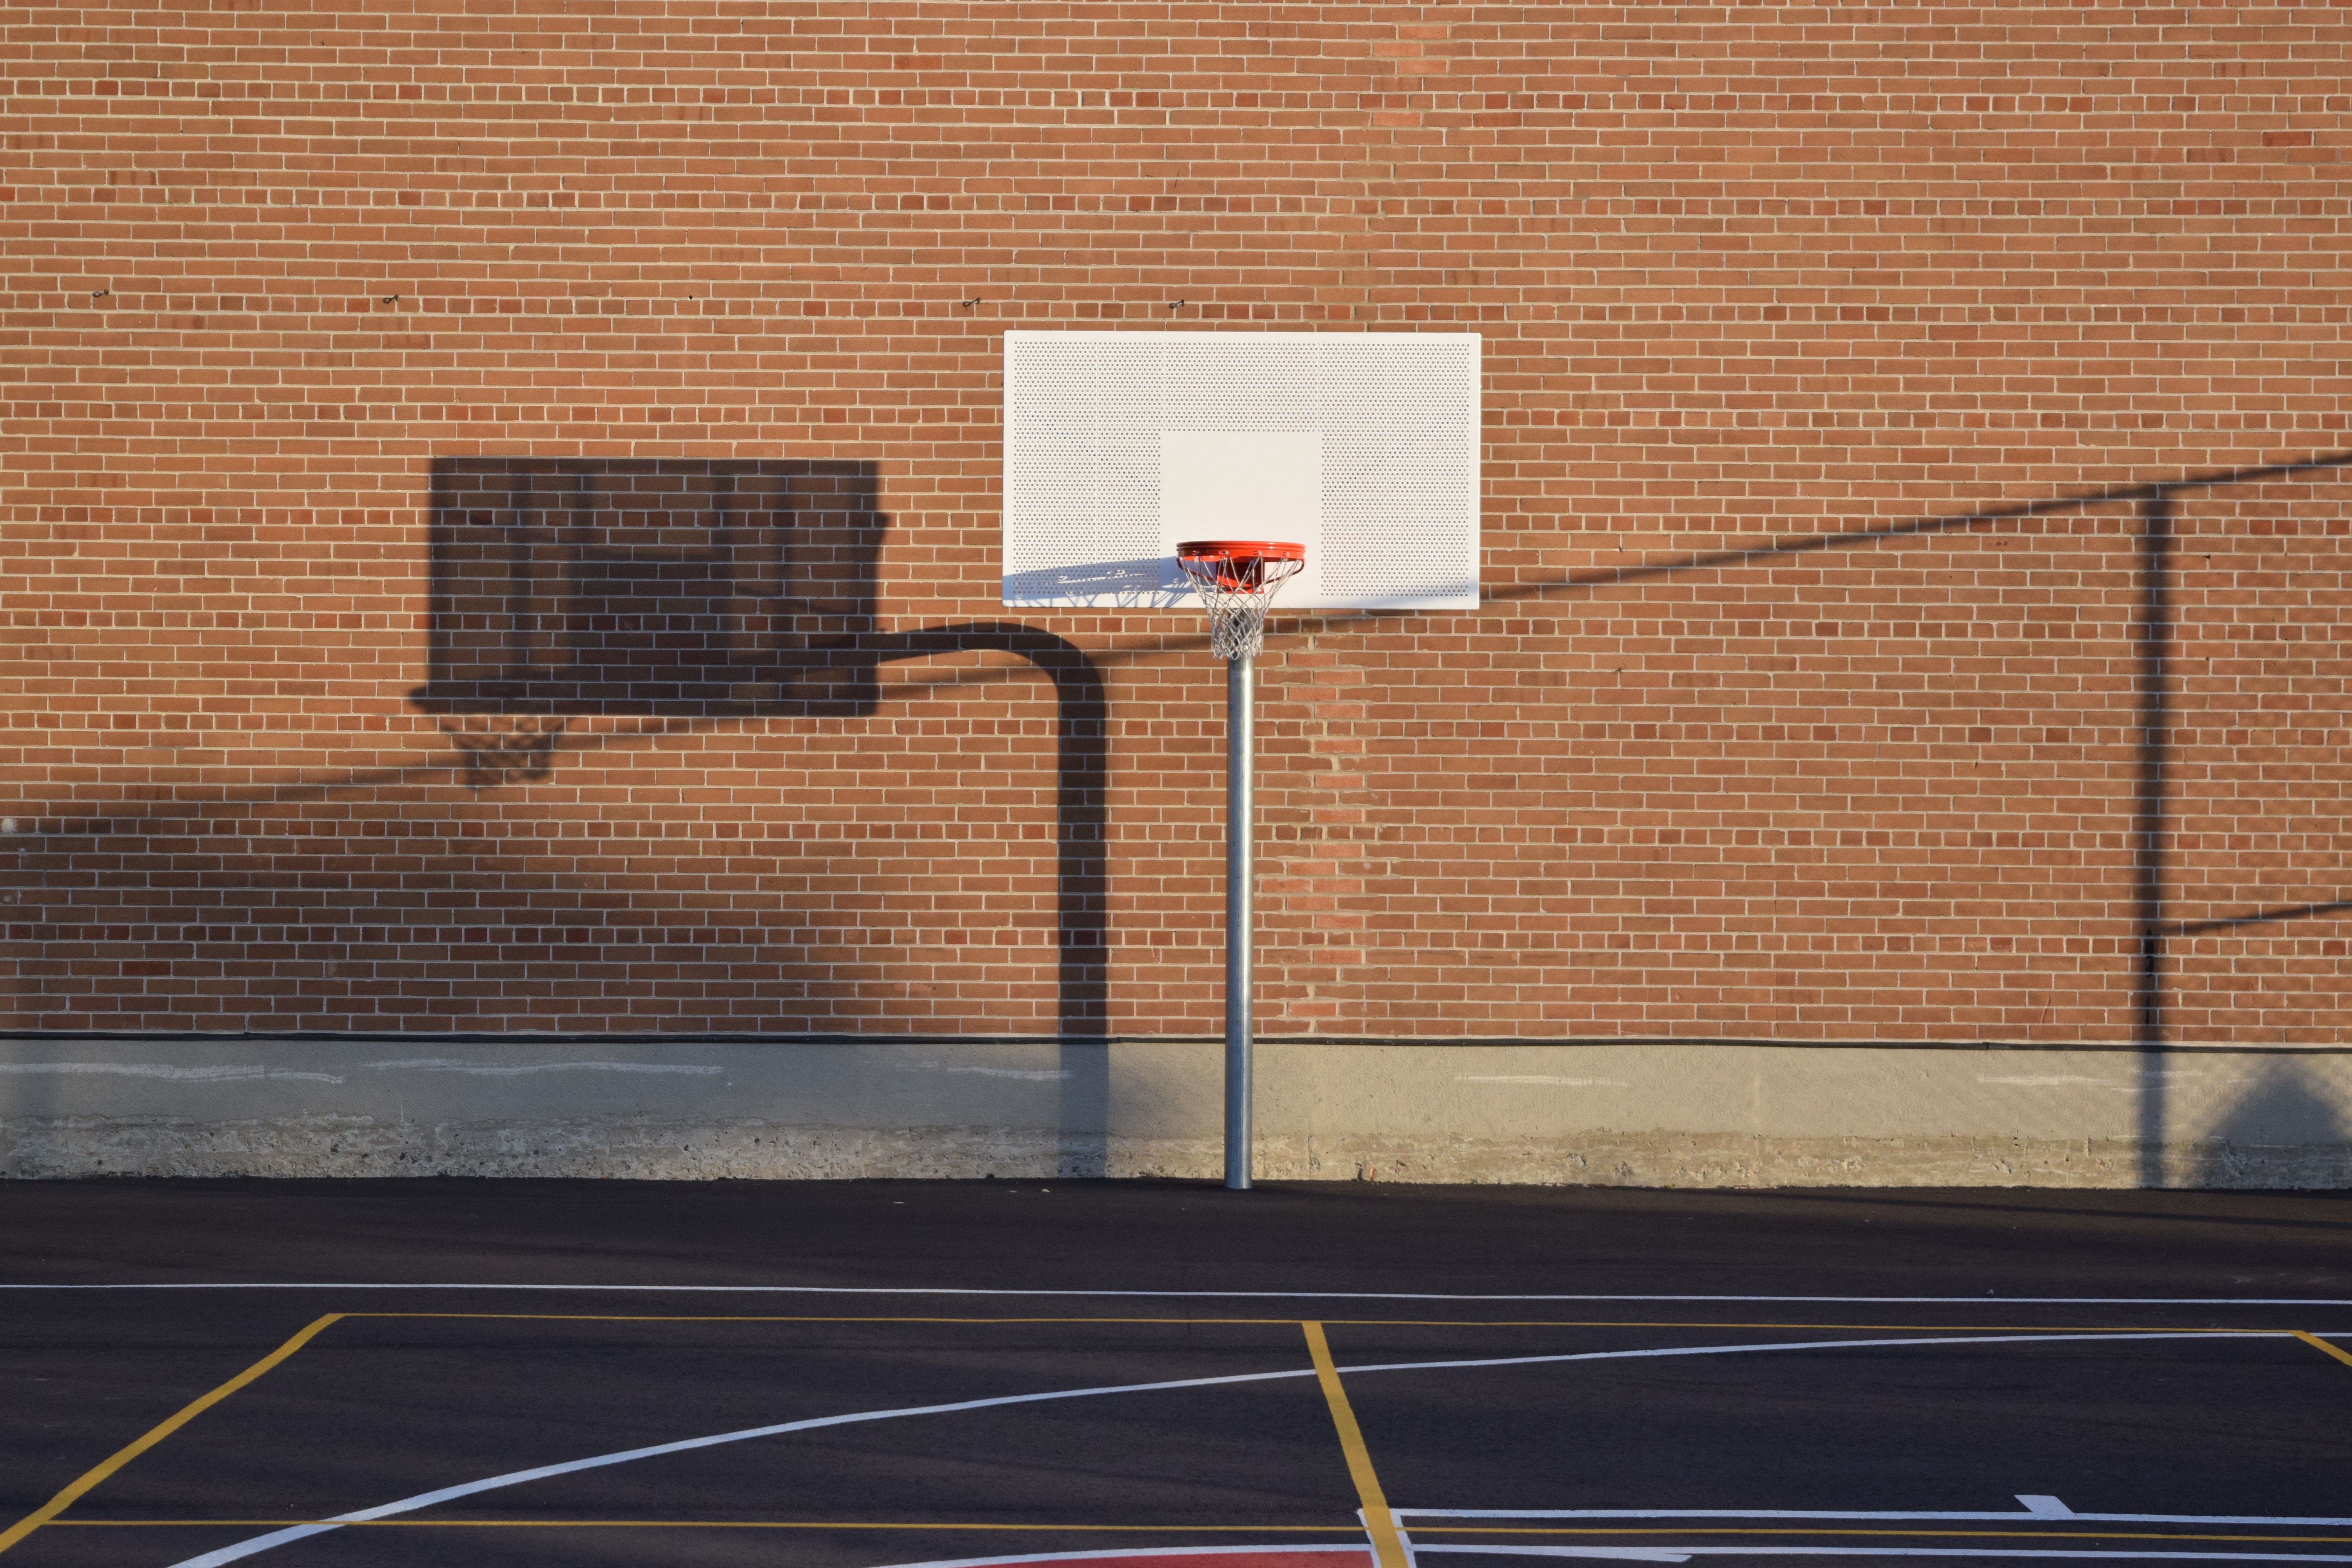 Basketball Hoop on Court, Shadow, Outdoors, Street, Light, HQ Photo